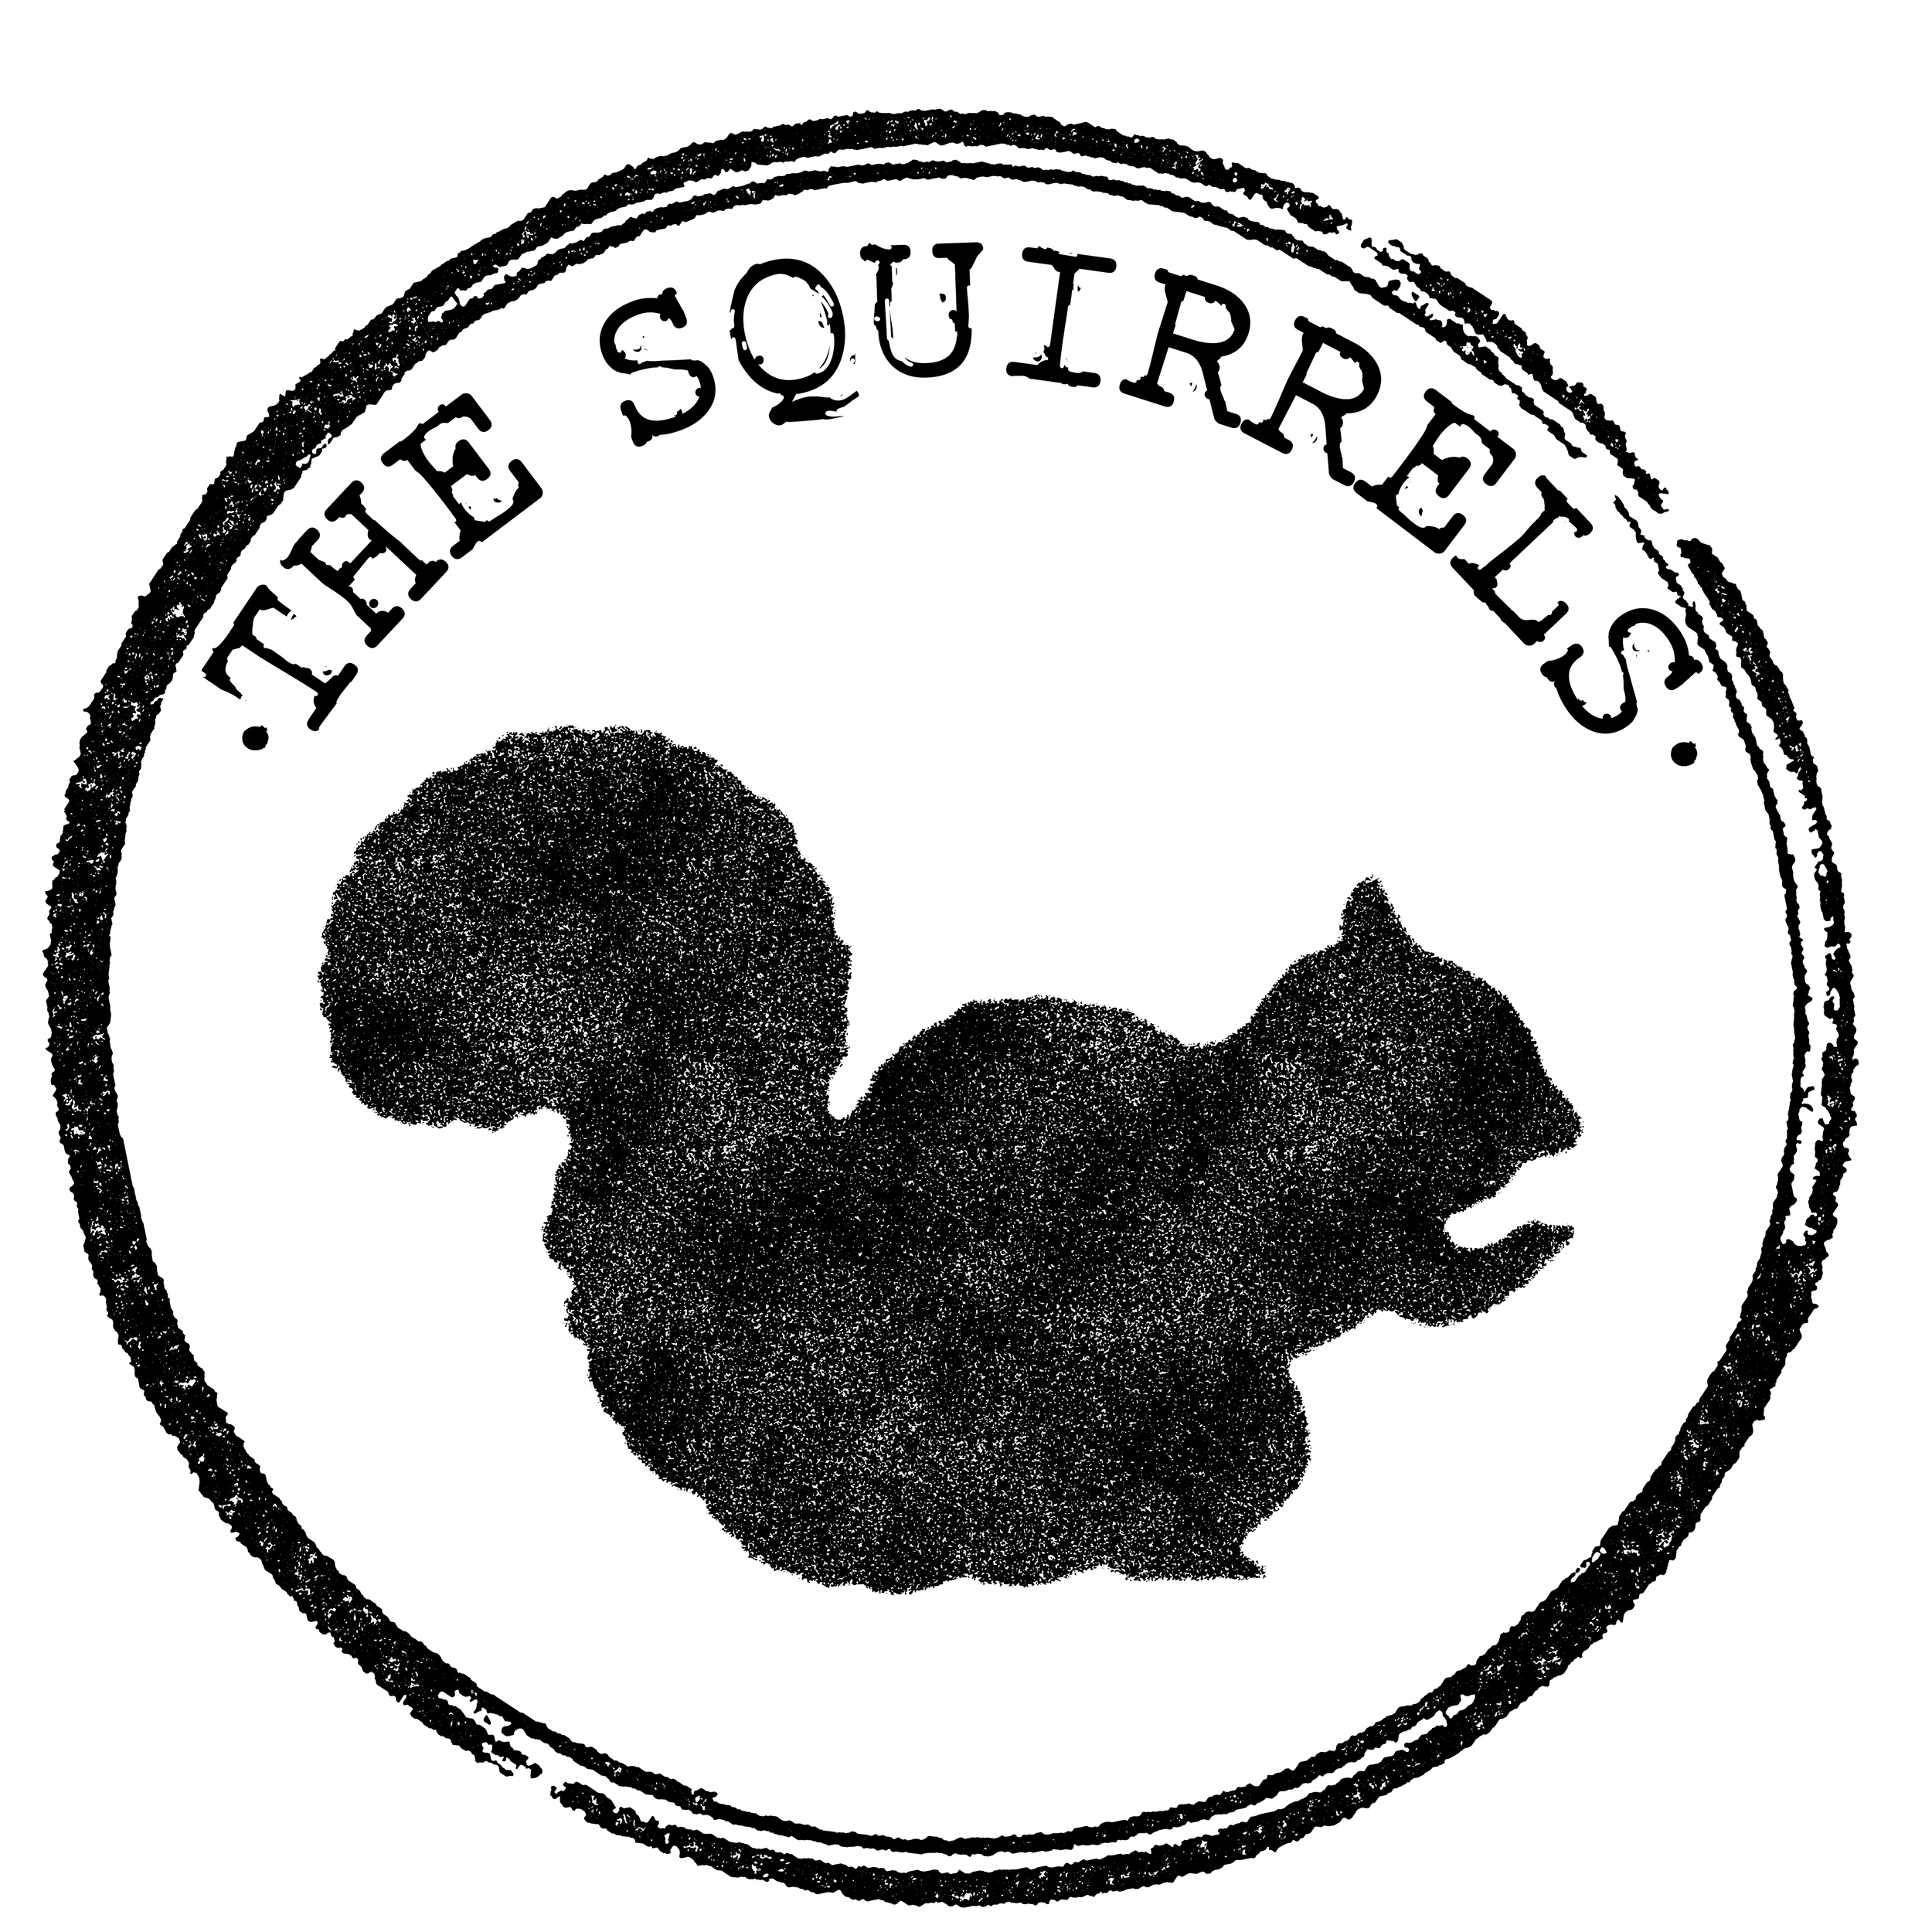 THESQUIRRELS-01.png